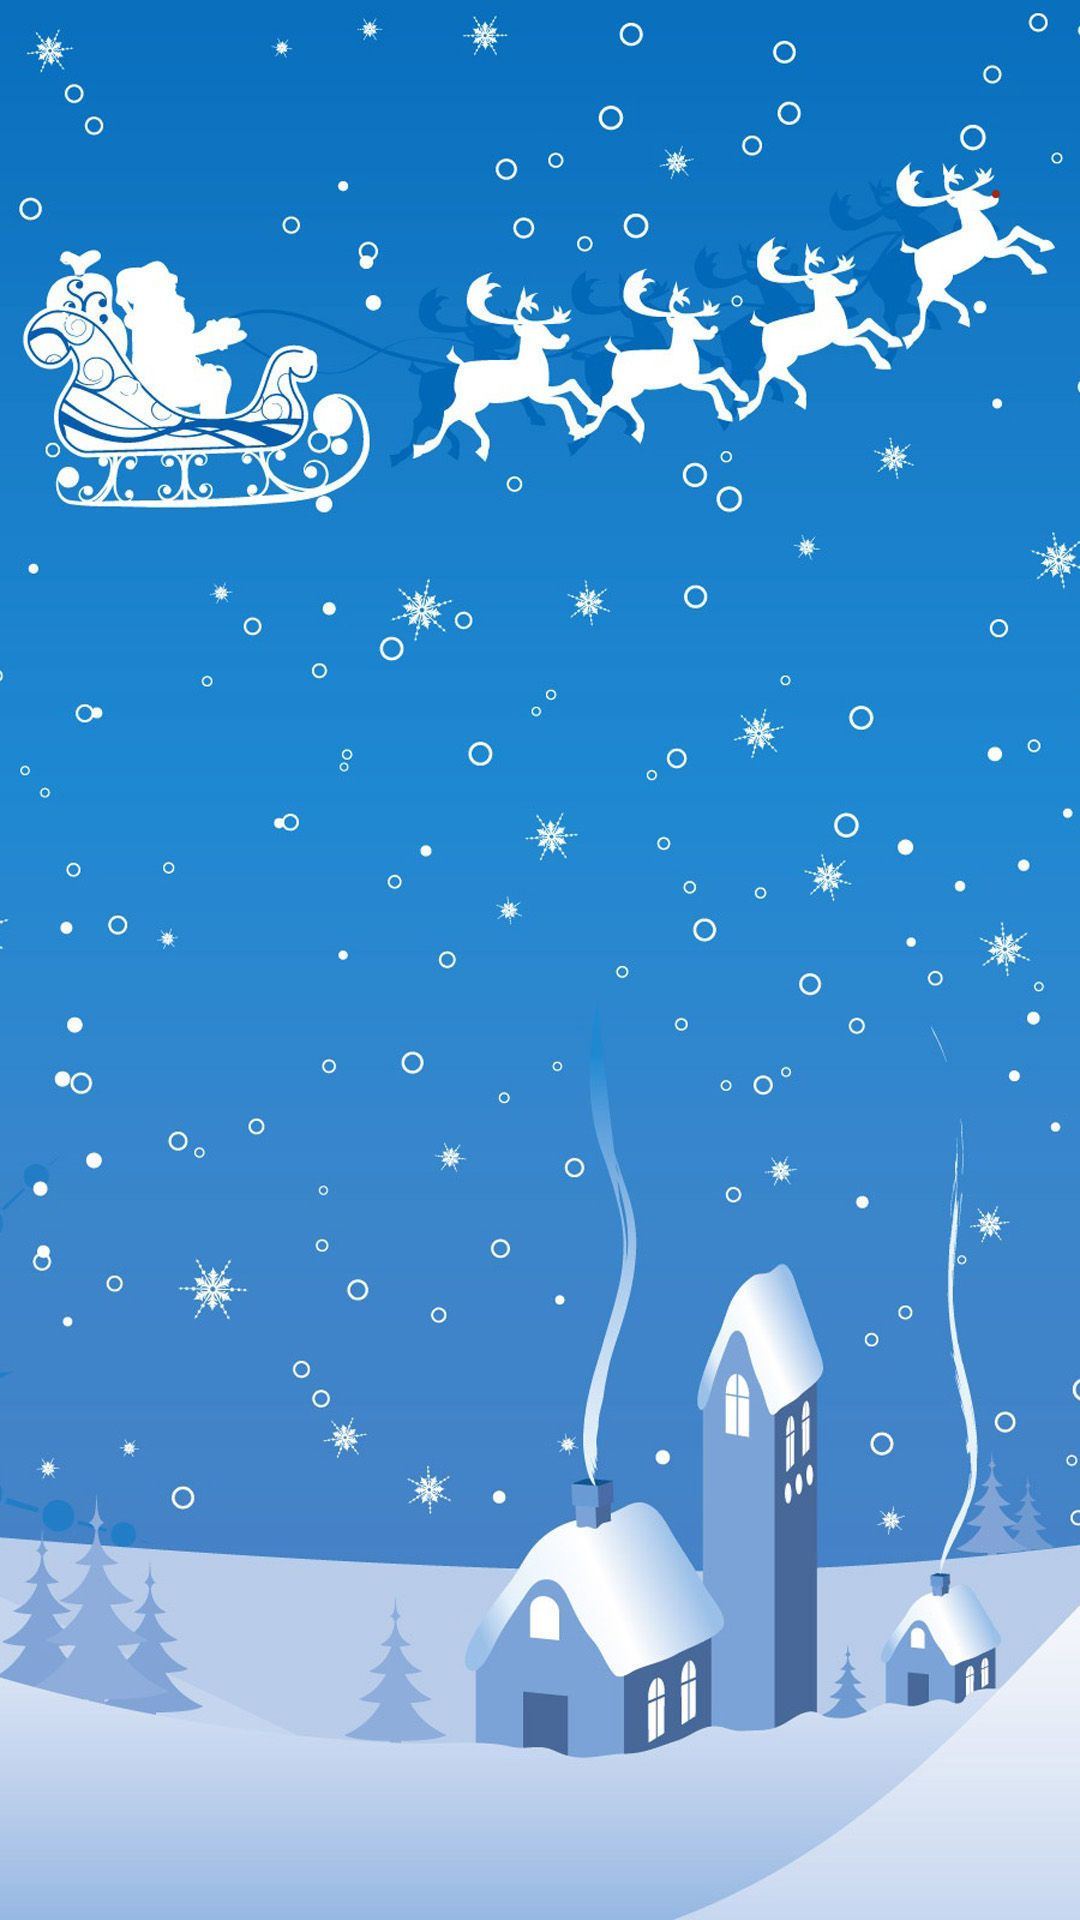 Samsung Galaxy Wallpaper Christmas Christmas theme blue